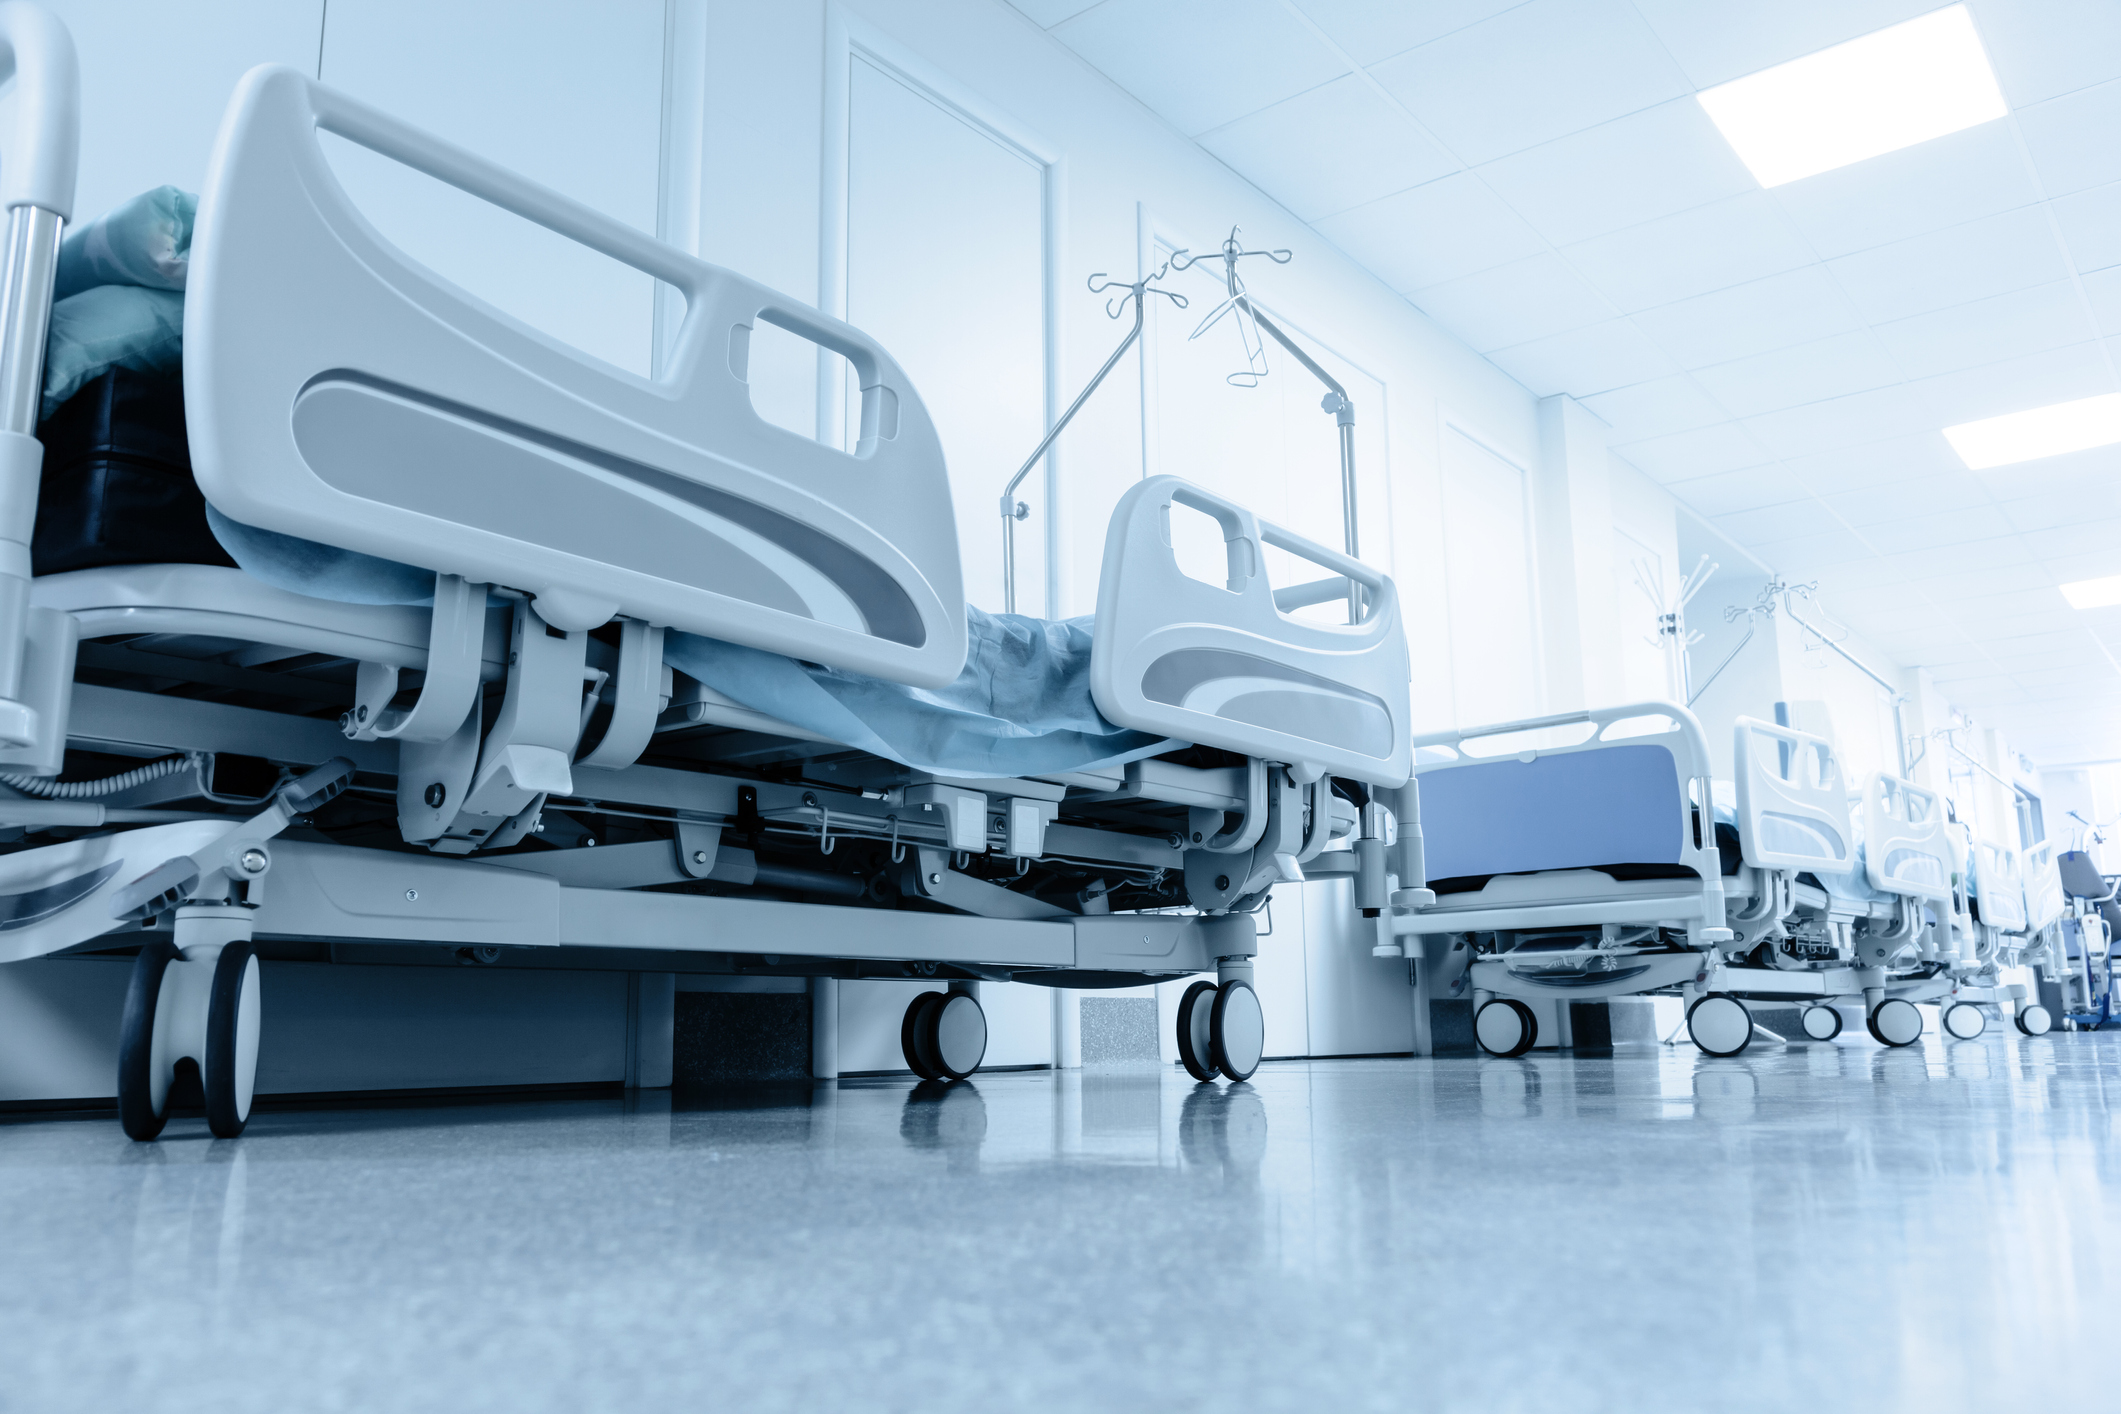 Low angle shot of a hospital hallway lined with empty stretchers